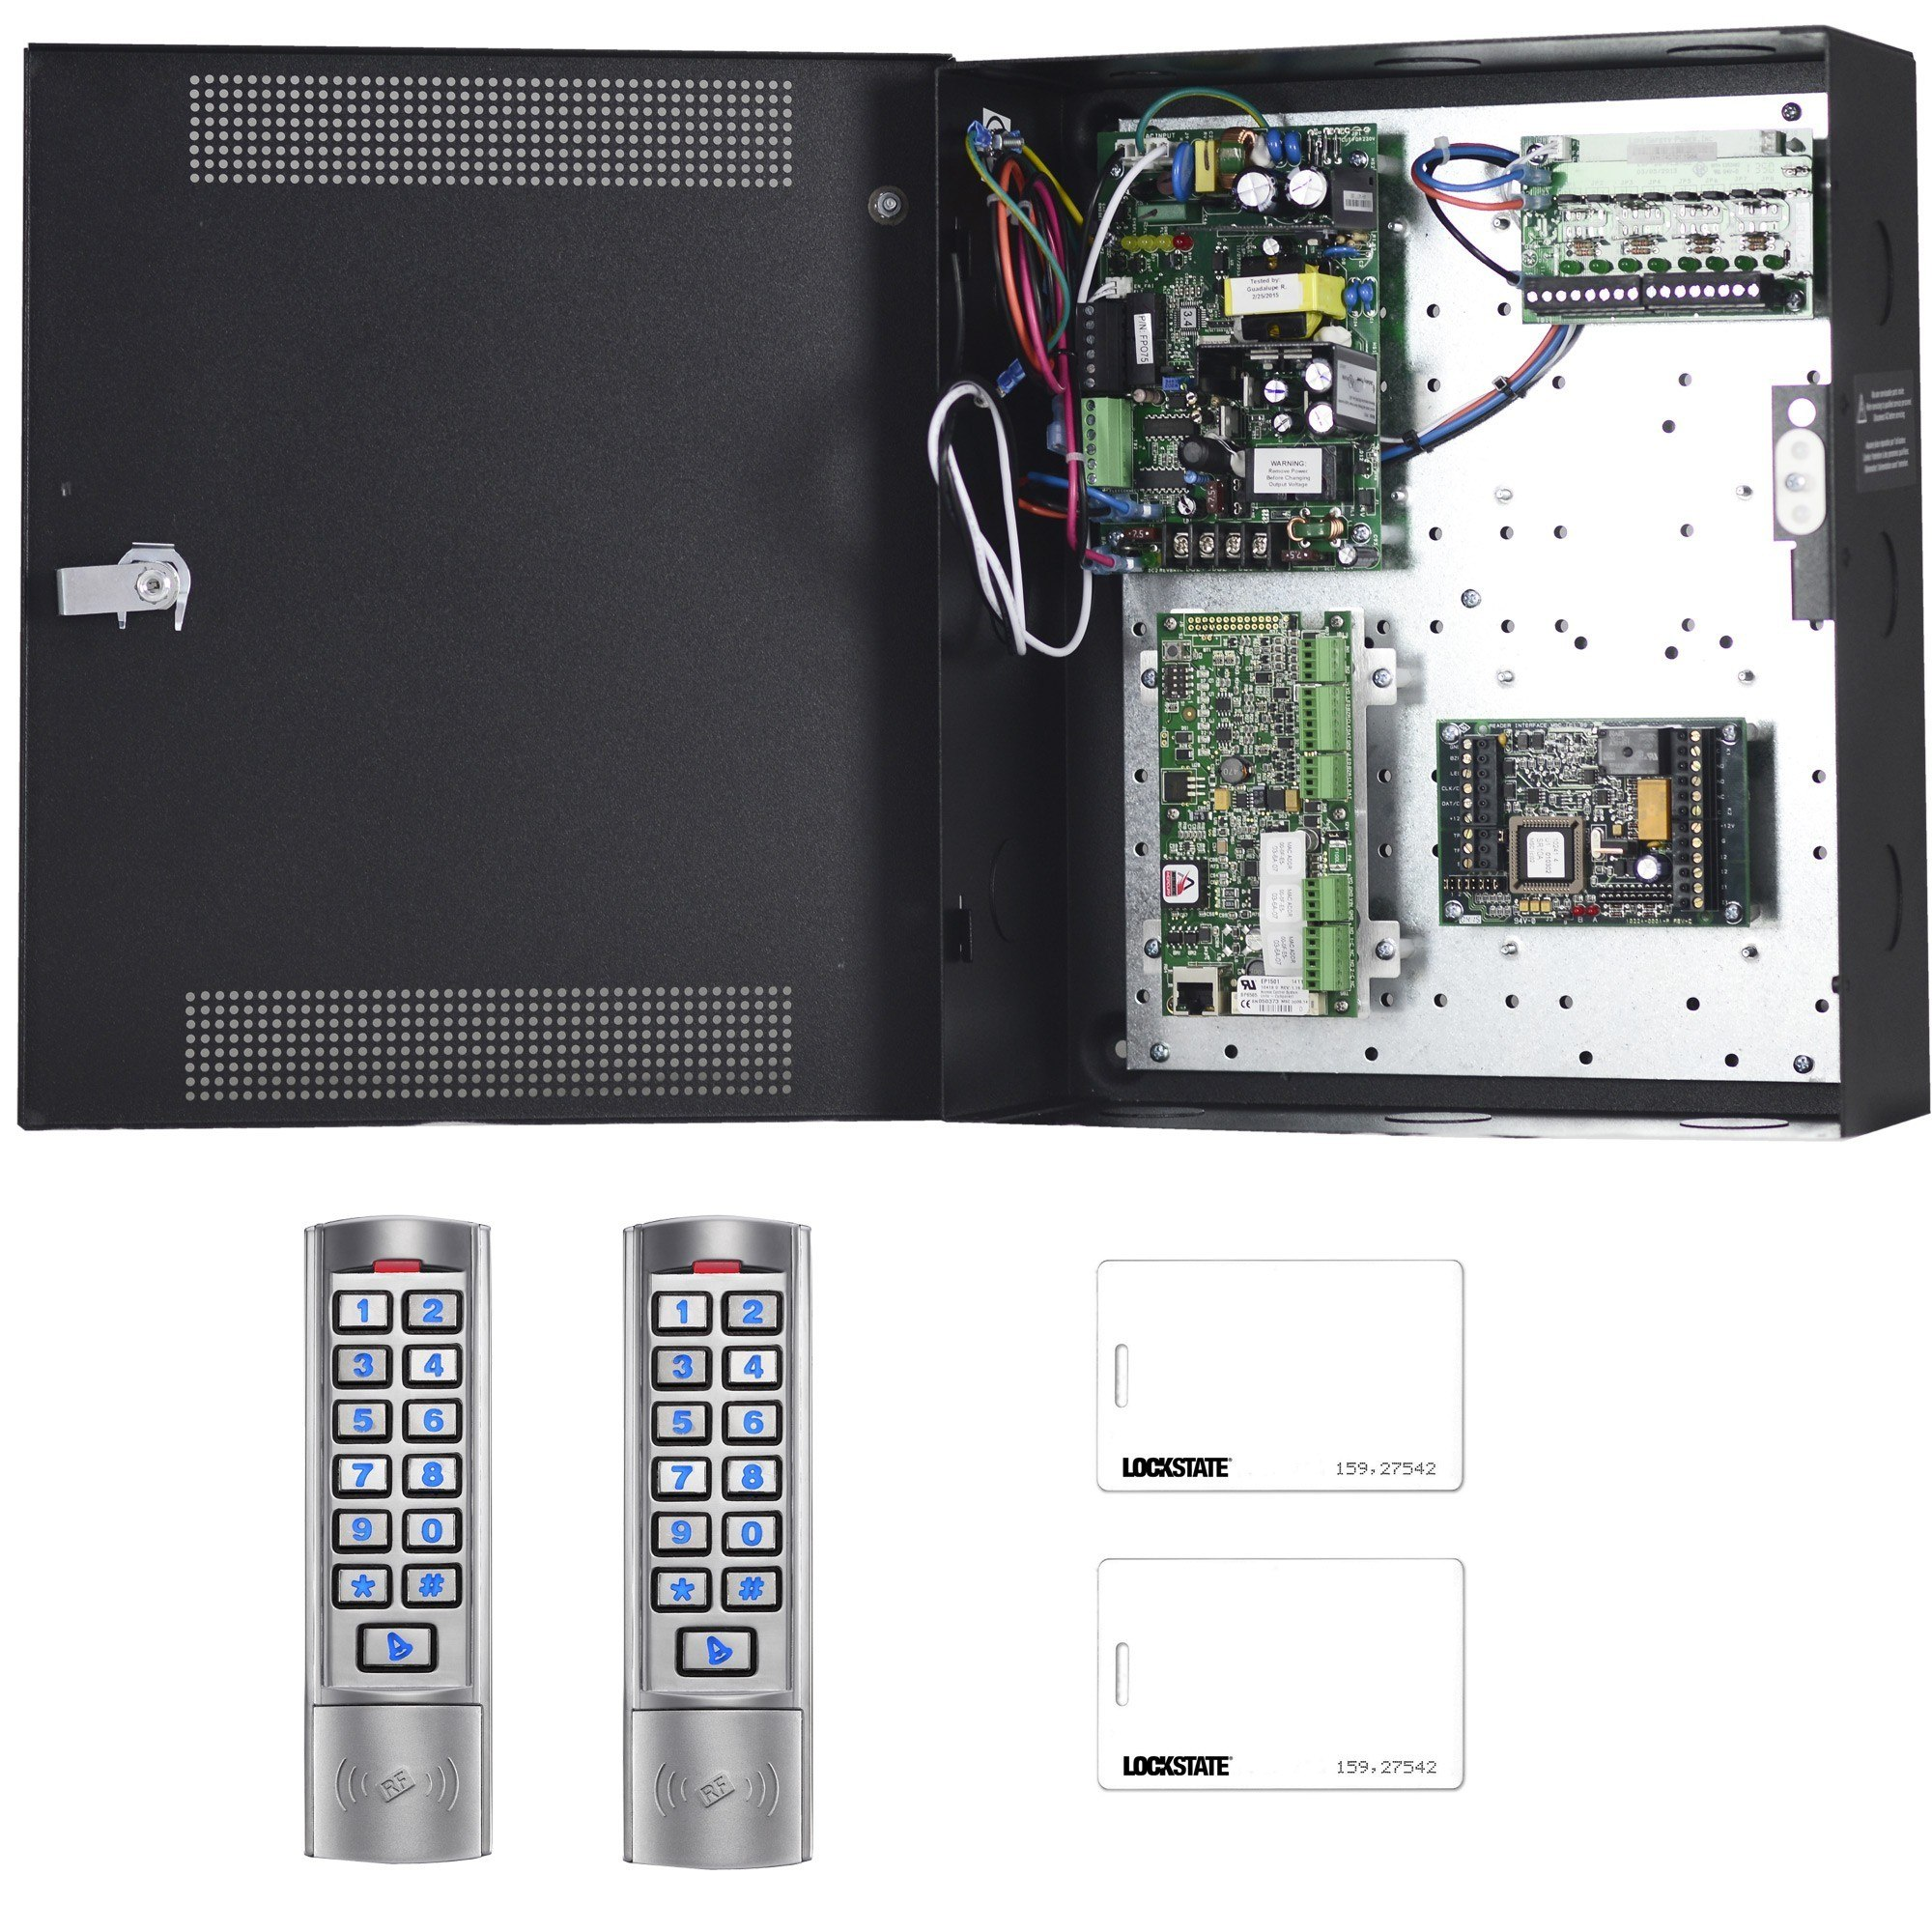 LOCKSTATE LS-ACS2KIT ACCESS CONTROL KIT WITH READERS 4 DOOR